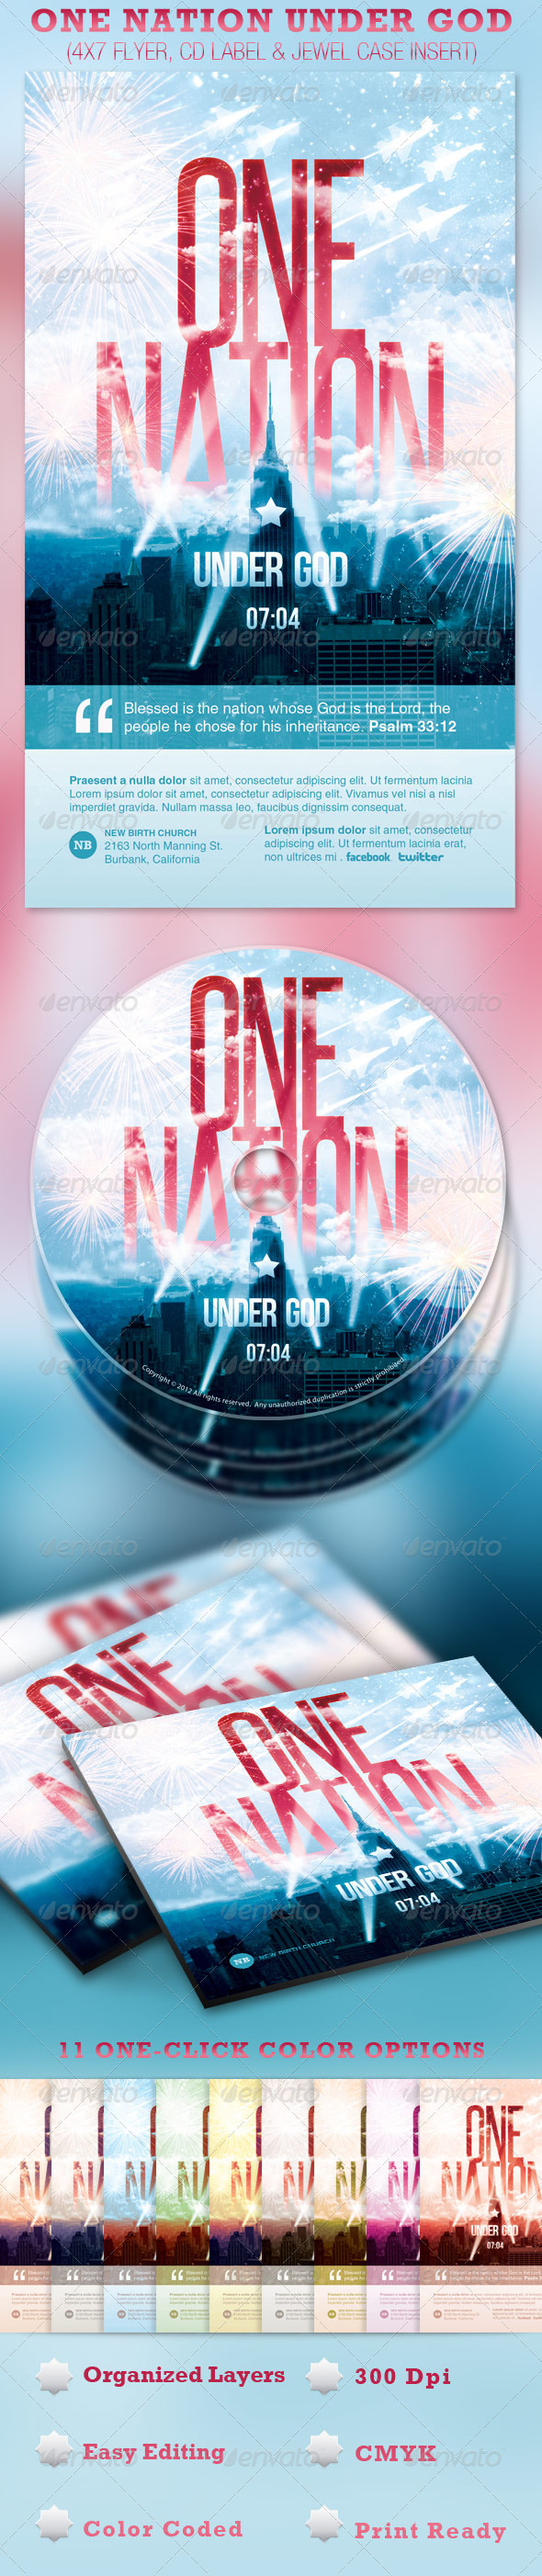 One Nation Under God Flyer and CD Template - Church Flyers